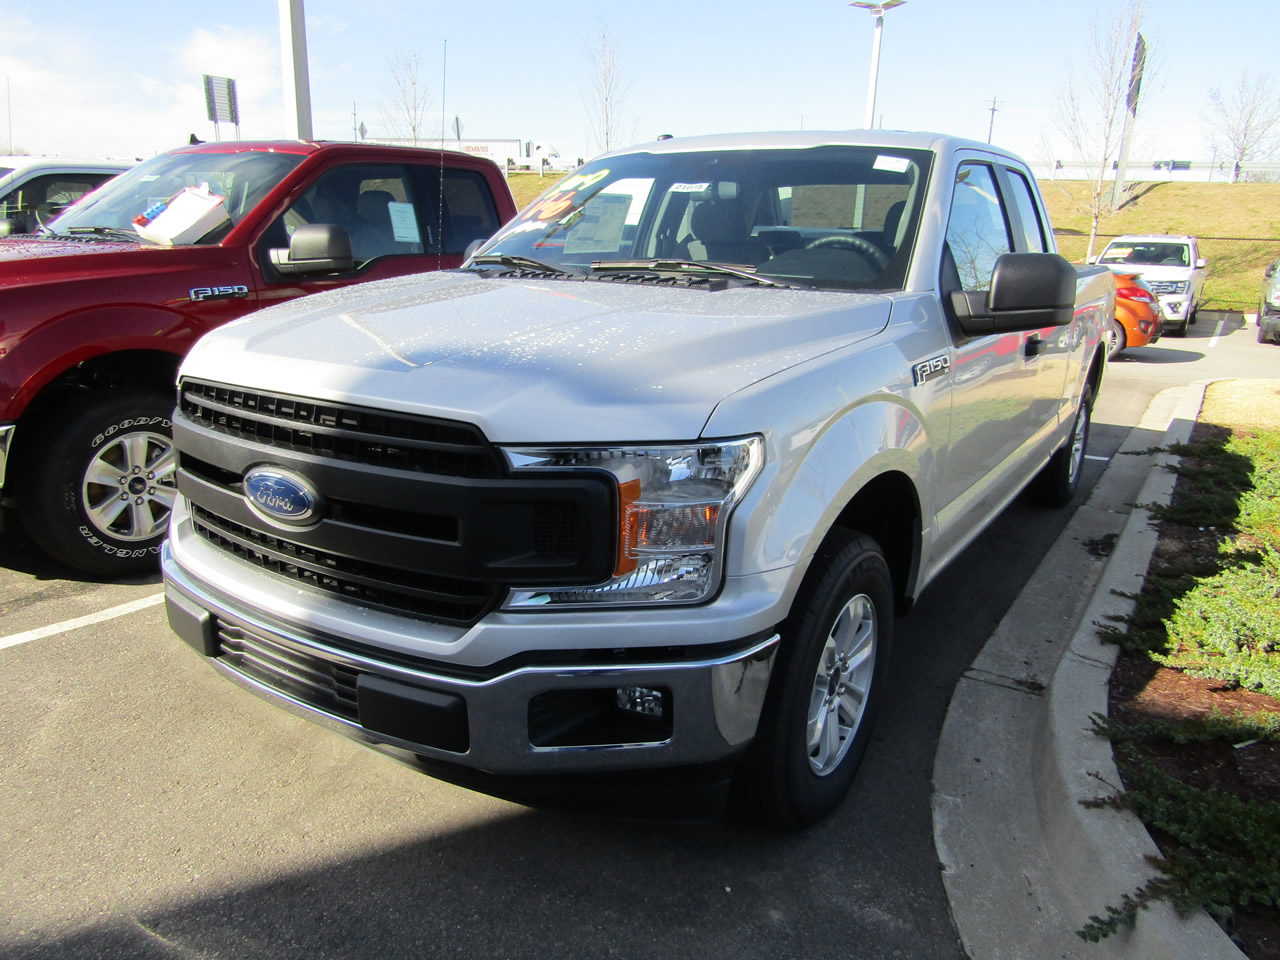 2019 Ford F-150 XL SuperCab Dick Smith Ford serving Columbia, Sumter, Orangeburg, West Columbia, Lexington, Newberry, Lugoff SC, Selling new Ford cars and trucks and used vehciles in Columbia, SC